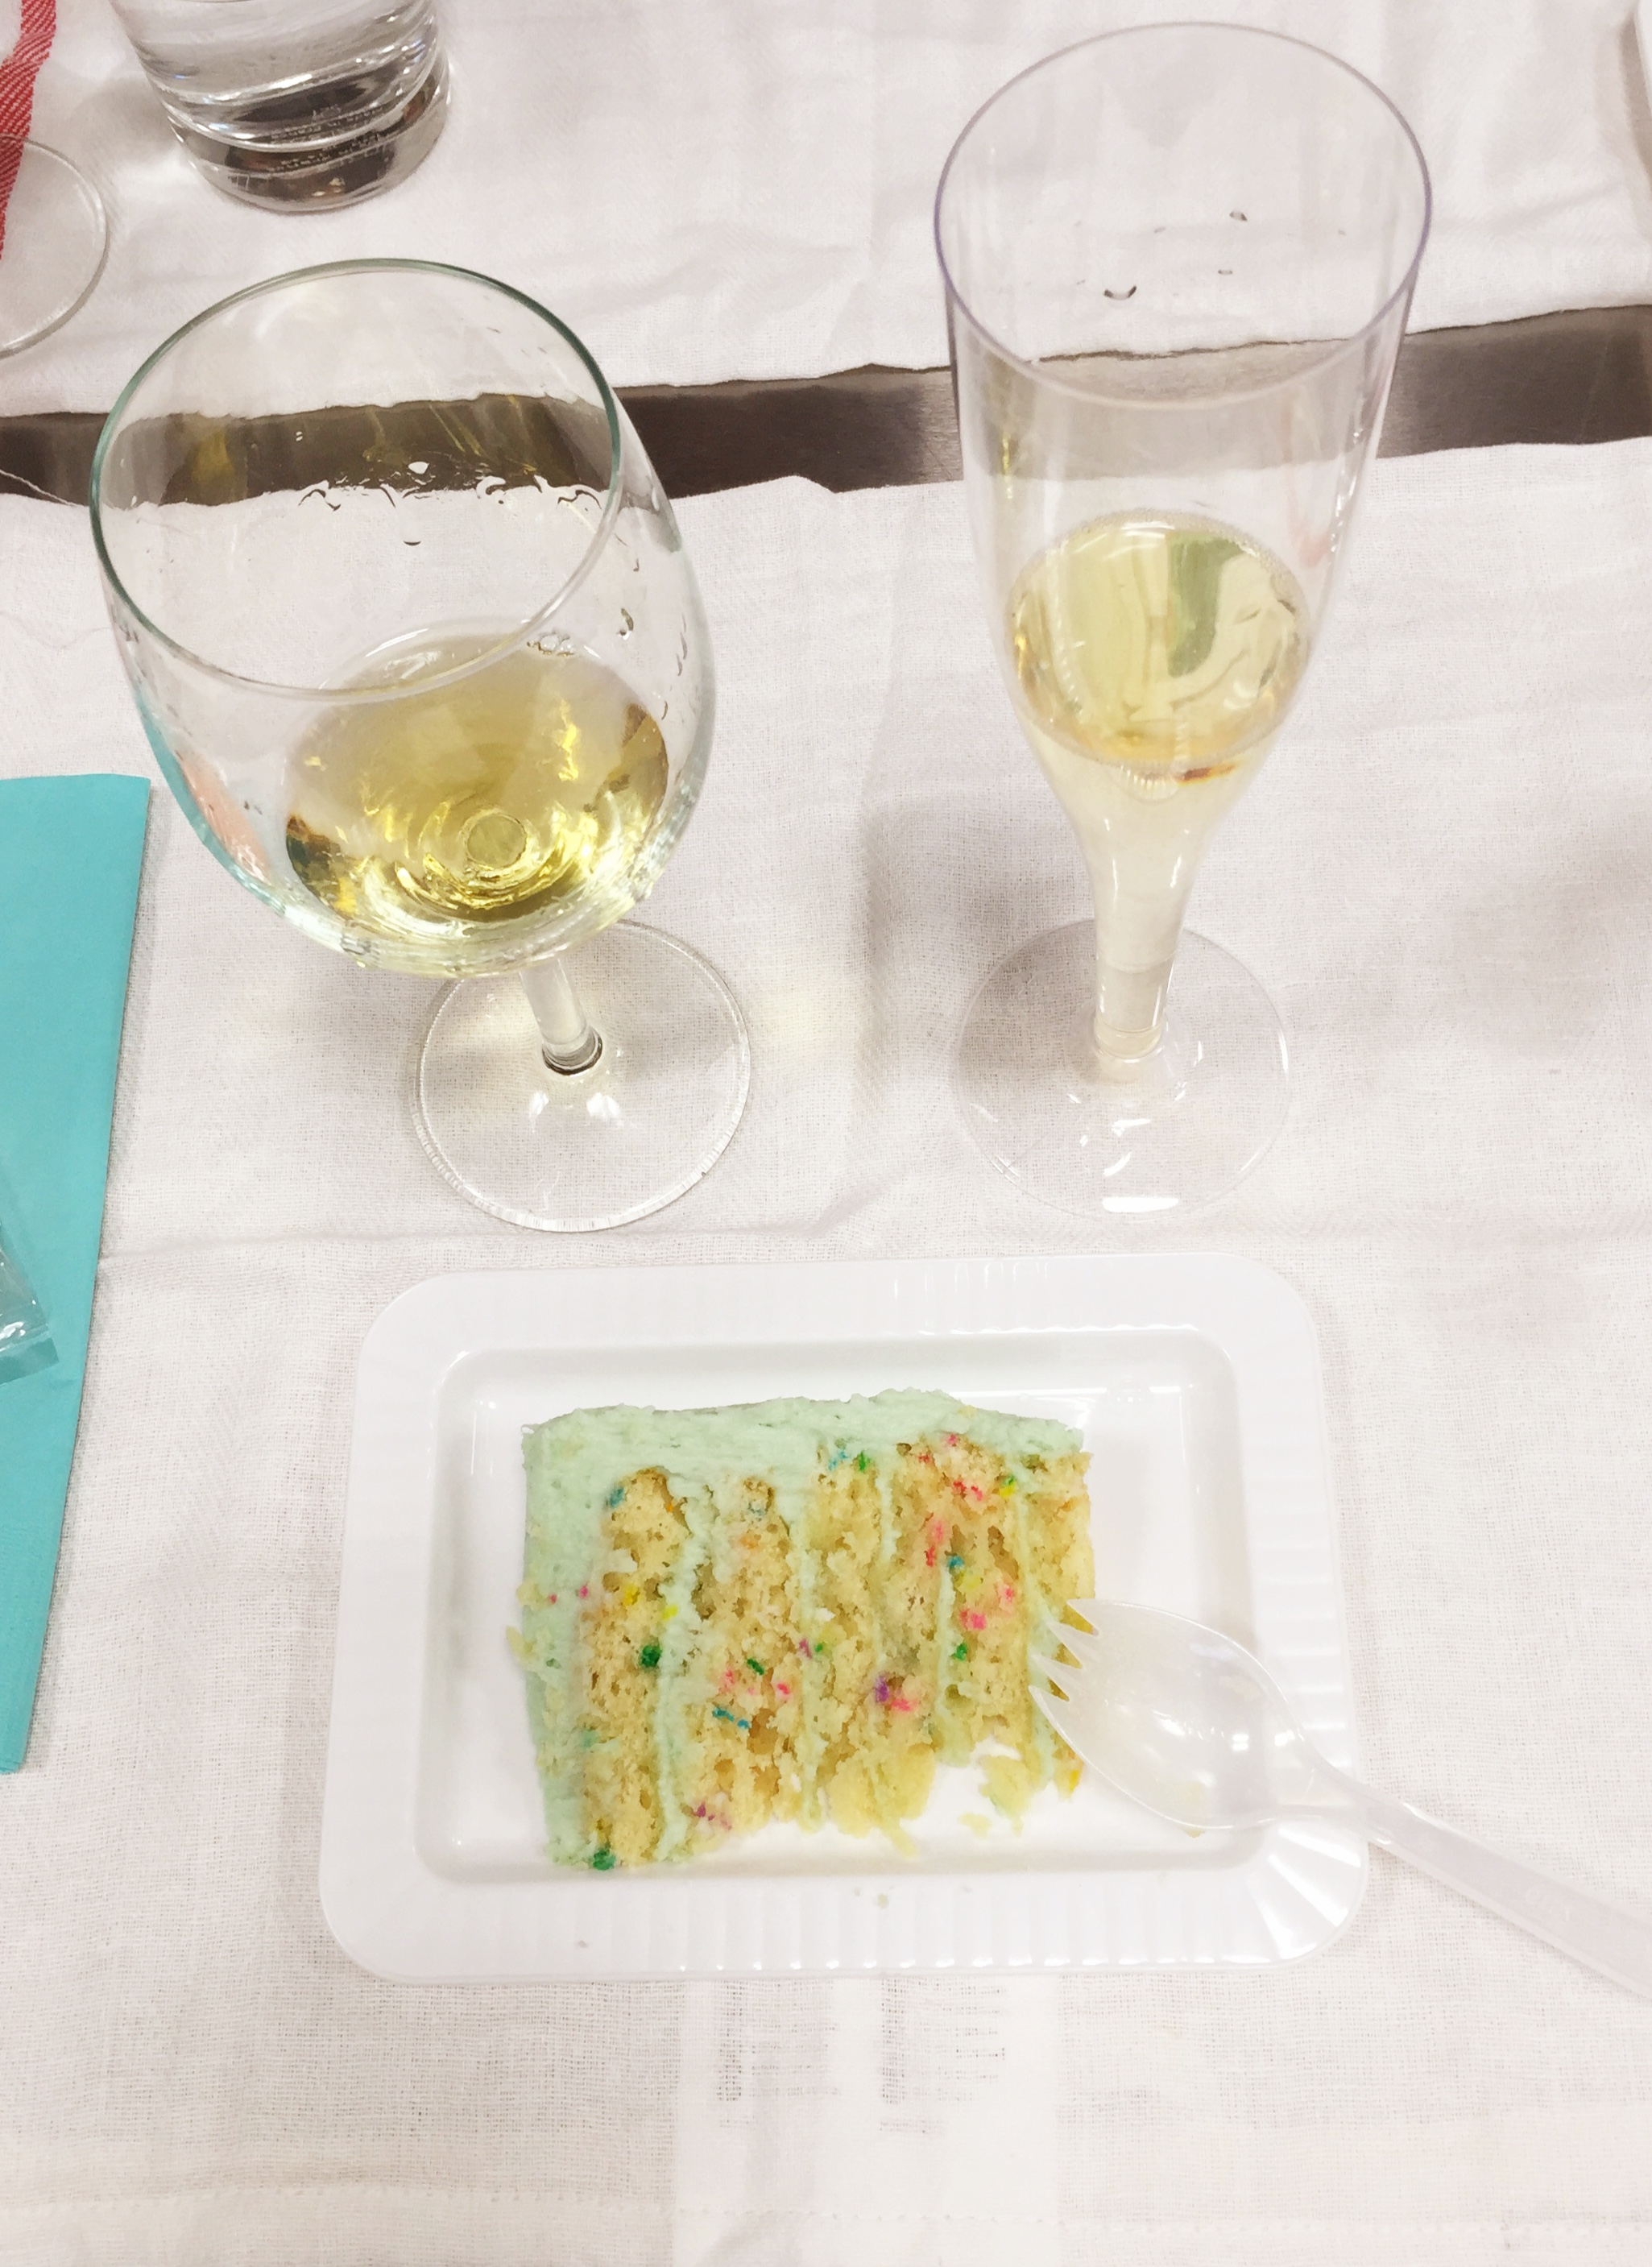 Wine paired with the Vanilla Celebration Cake. Divine!